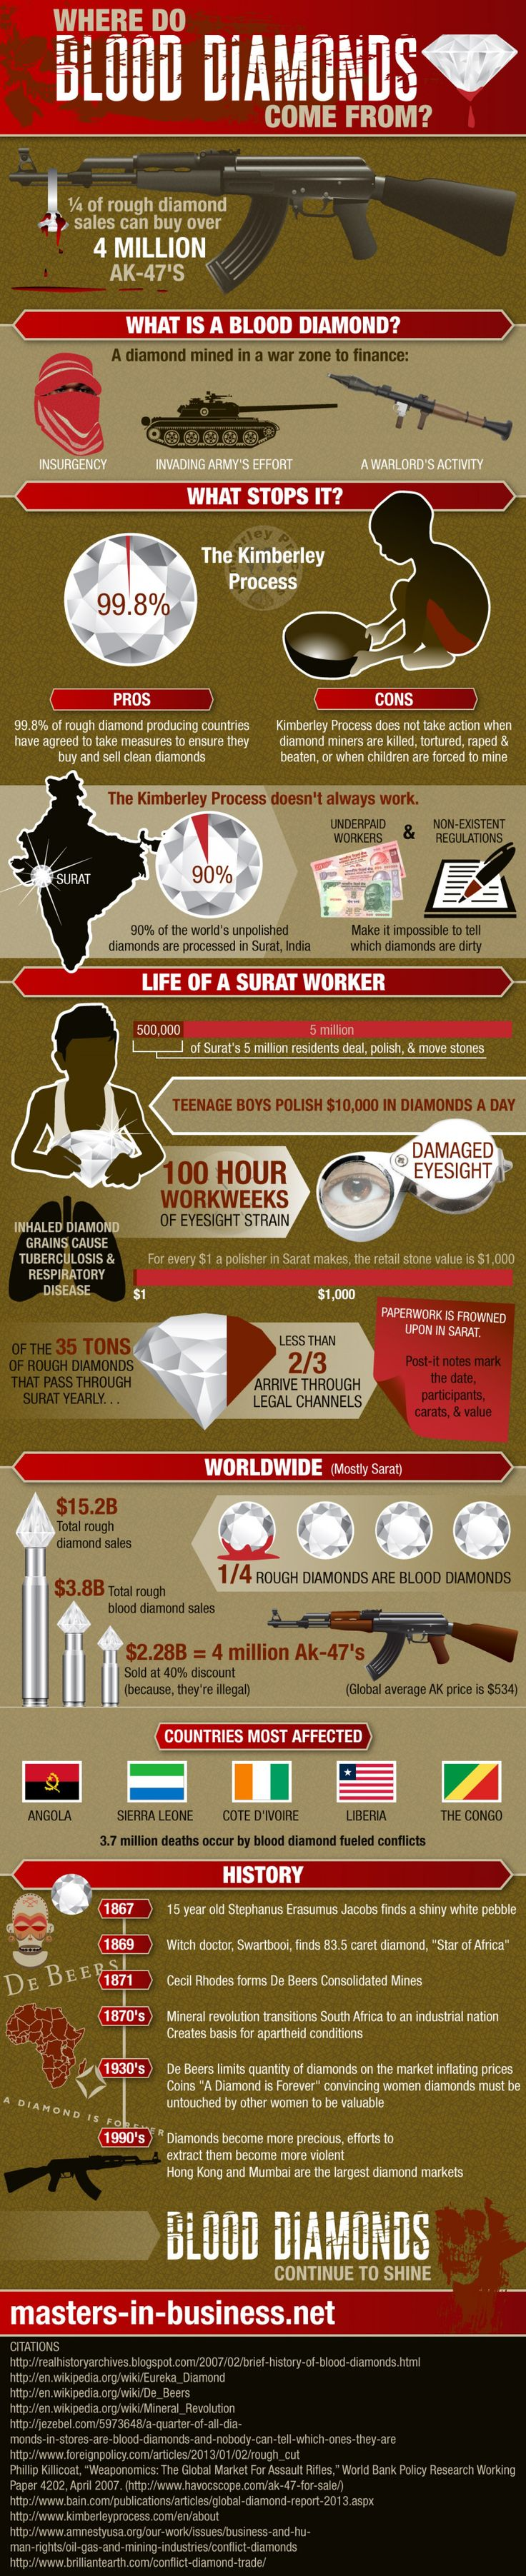 Where Do Blood Diamonds Come From? Infographic